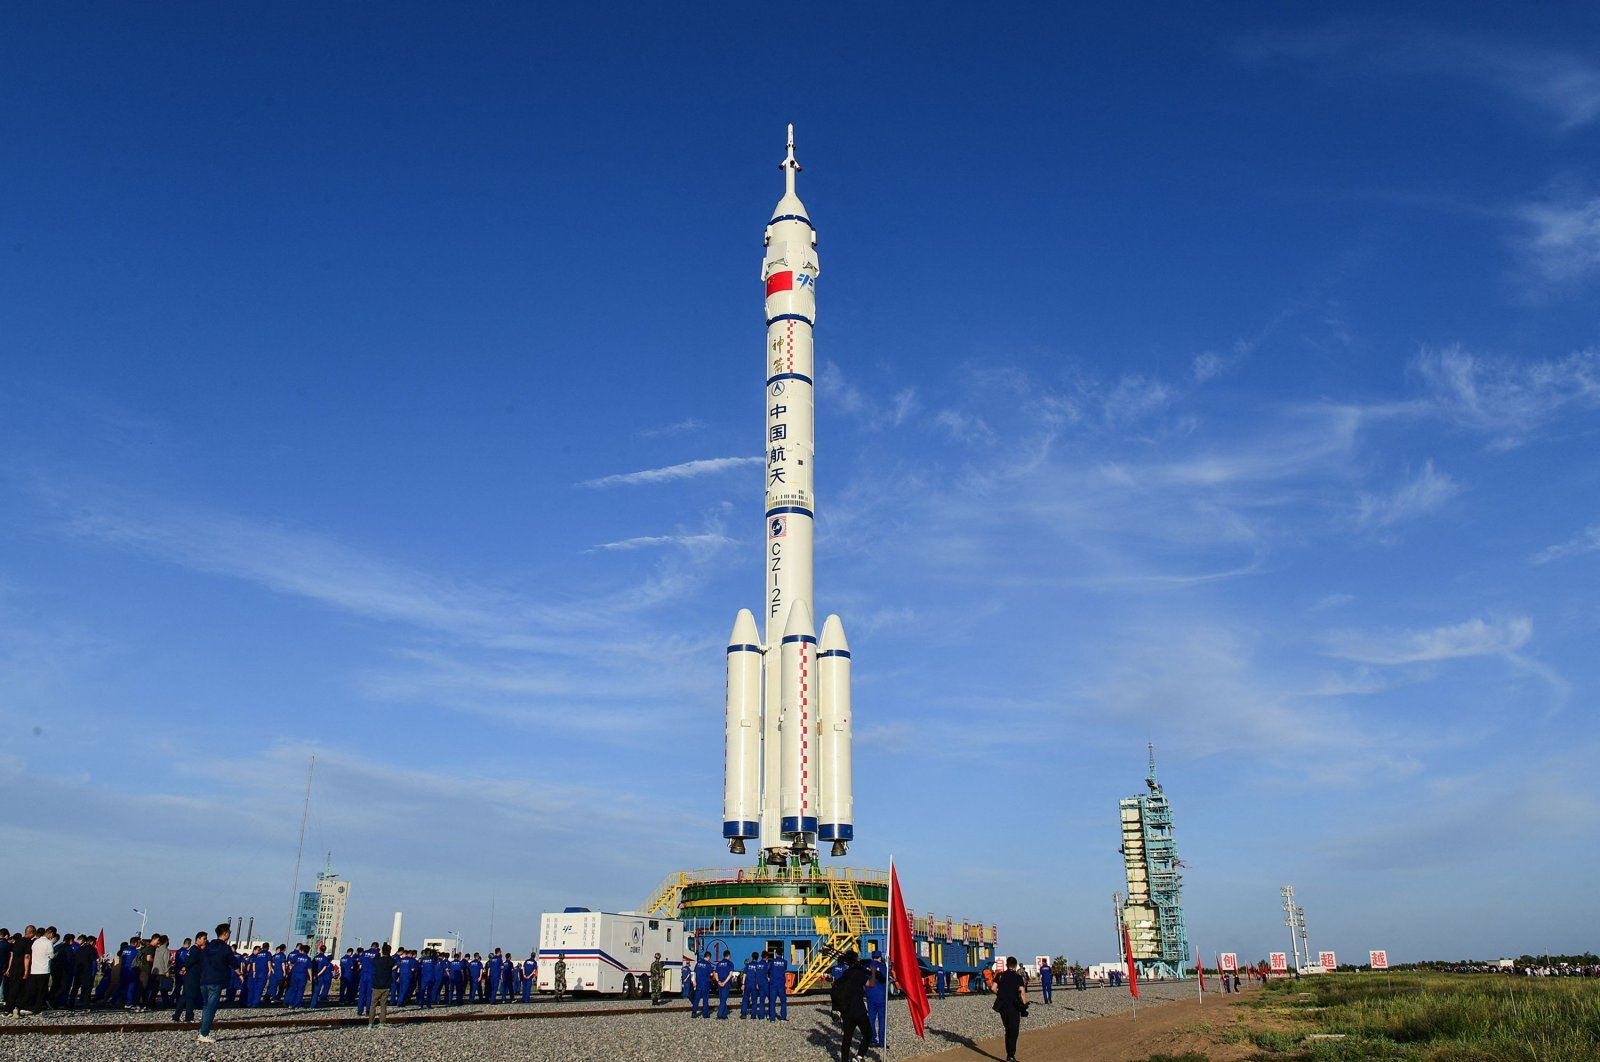 A Long March-2F carrier rocket, carrying the Shenzhou-12 spacecraft for China's first manned mission scheduled for June 17 to its new space station, at the Jiuquan Satellite Launch Centre in the northwestern Gansu province, China, June 9, 2021. (CNS via AFP)